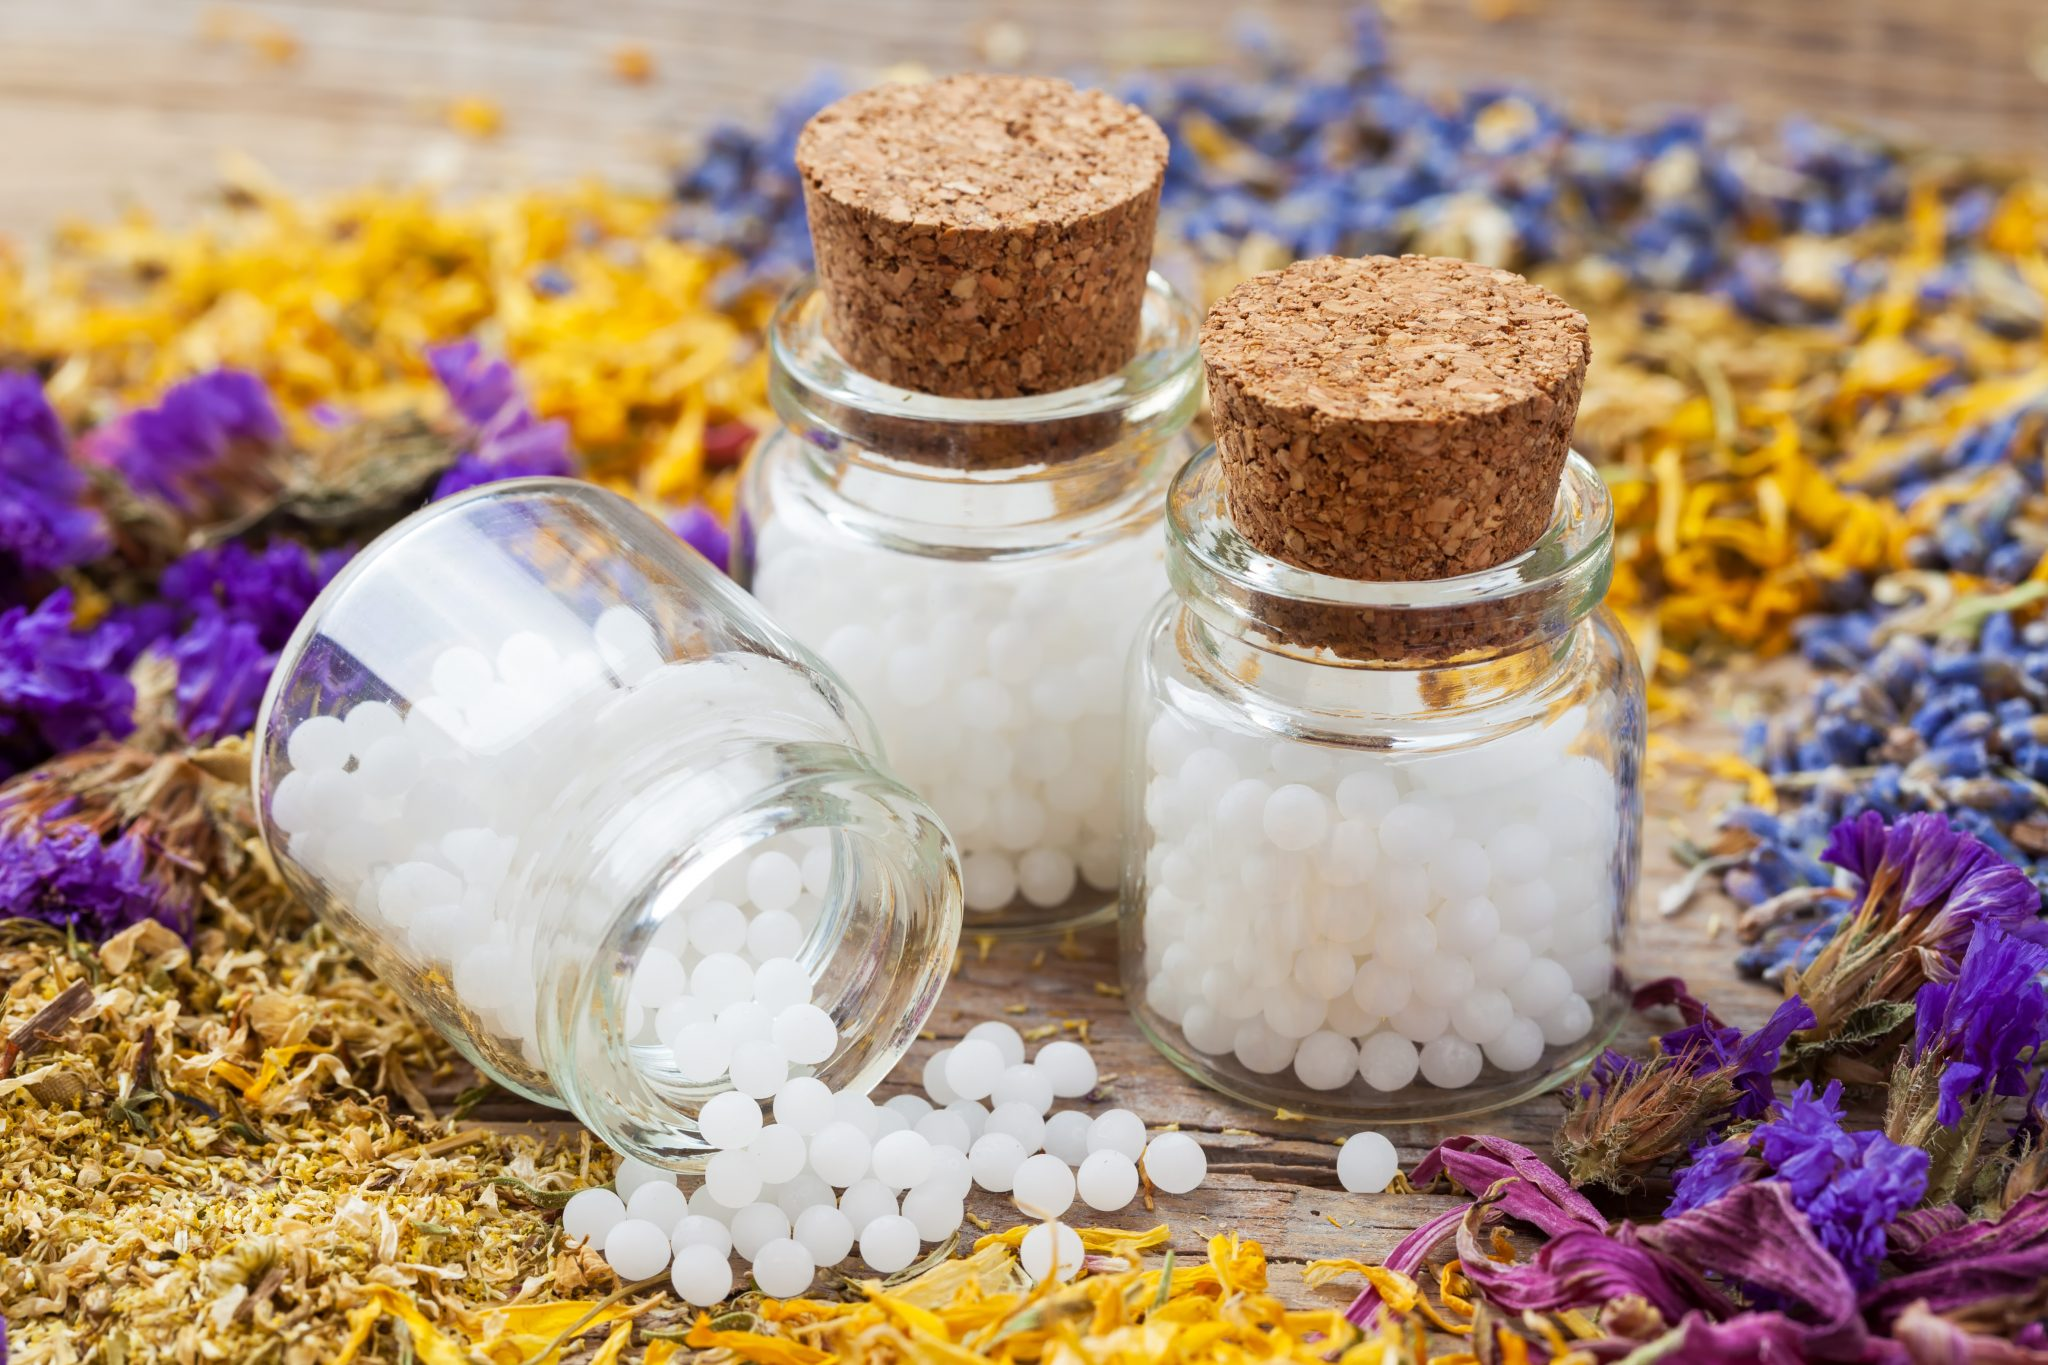 Homeopathic Services: Staying Focused With More Updates